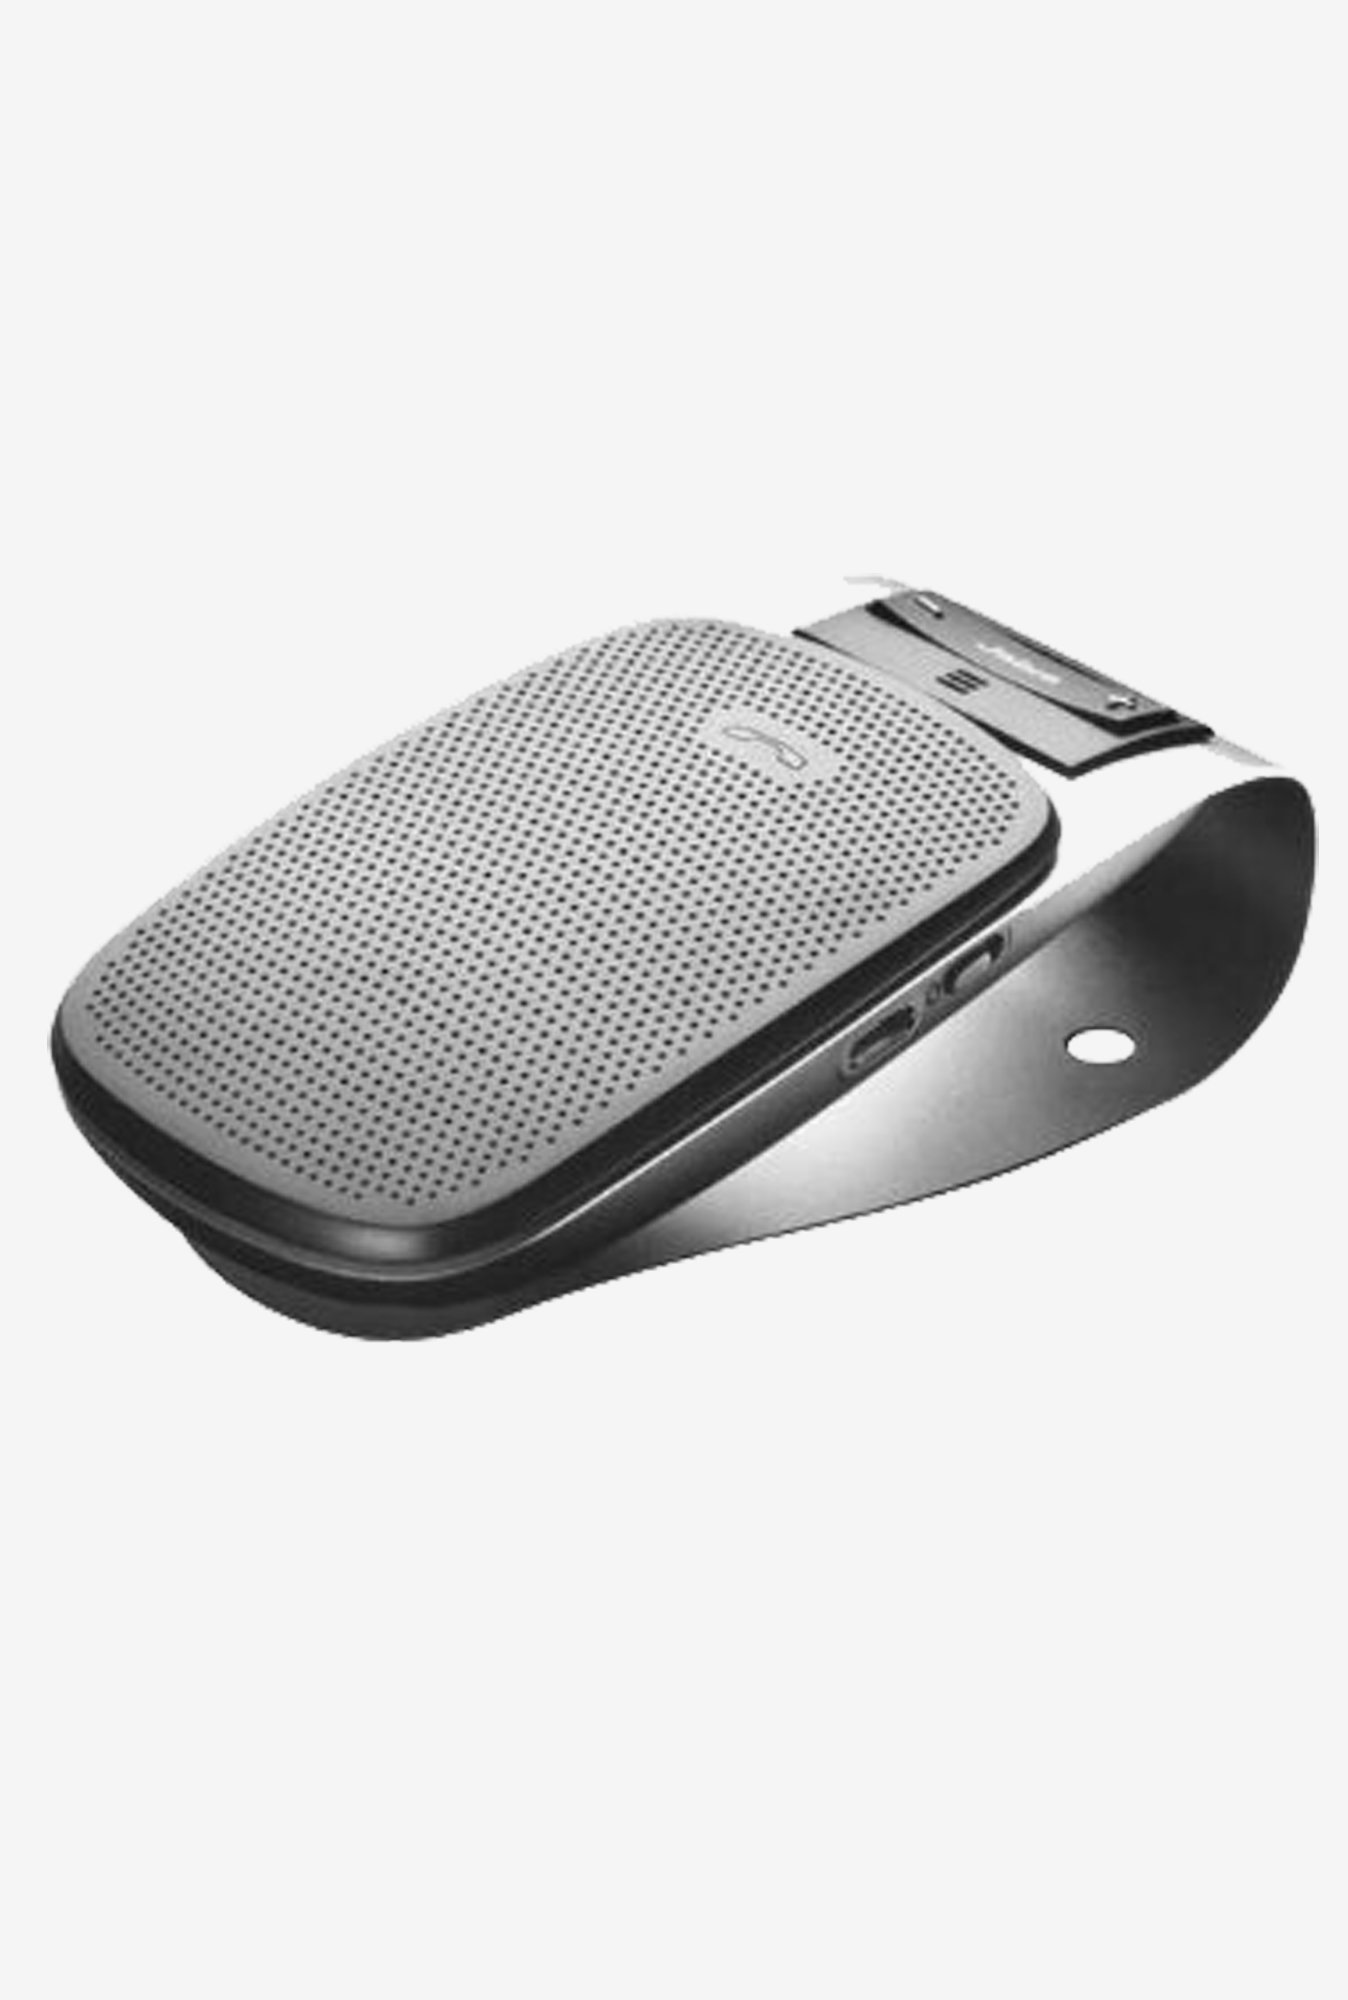 Jabra JBRA2024 Car Speaker Drive (Black)